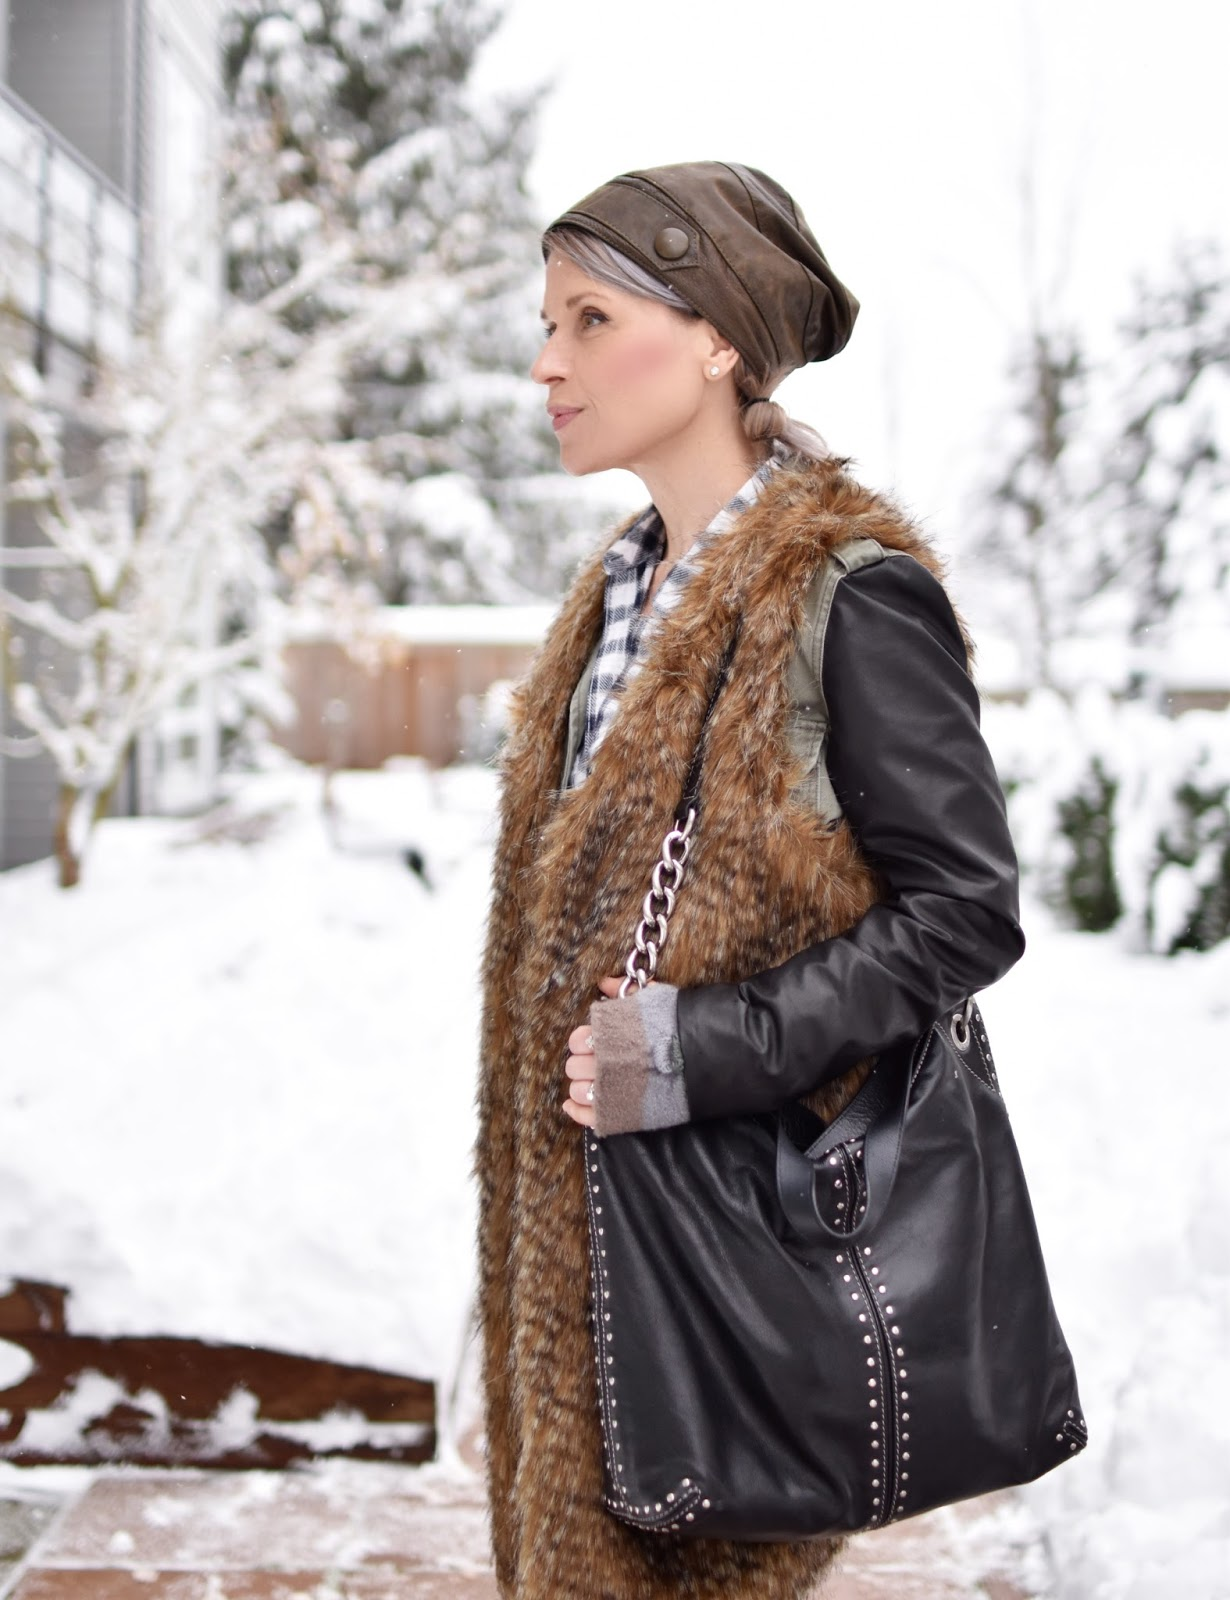 Monika Faulkner outfit inspiration - plaid shirt, military parka, long faux-fur vest, leather beanie, MK bag